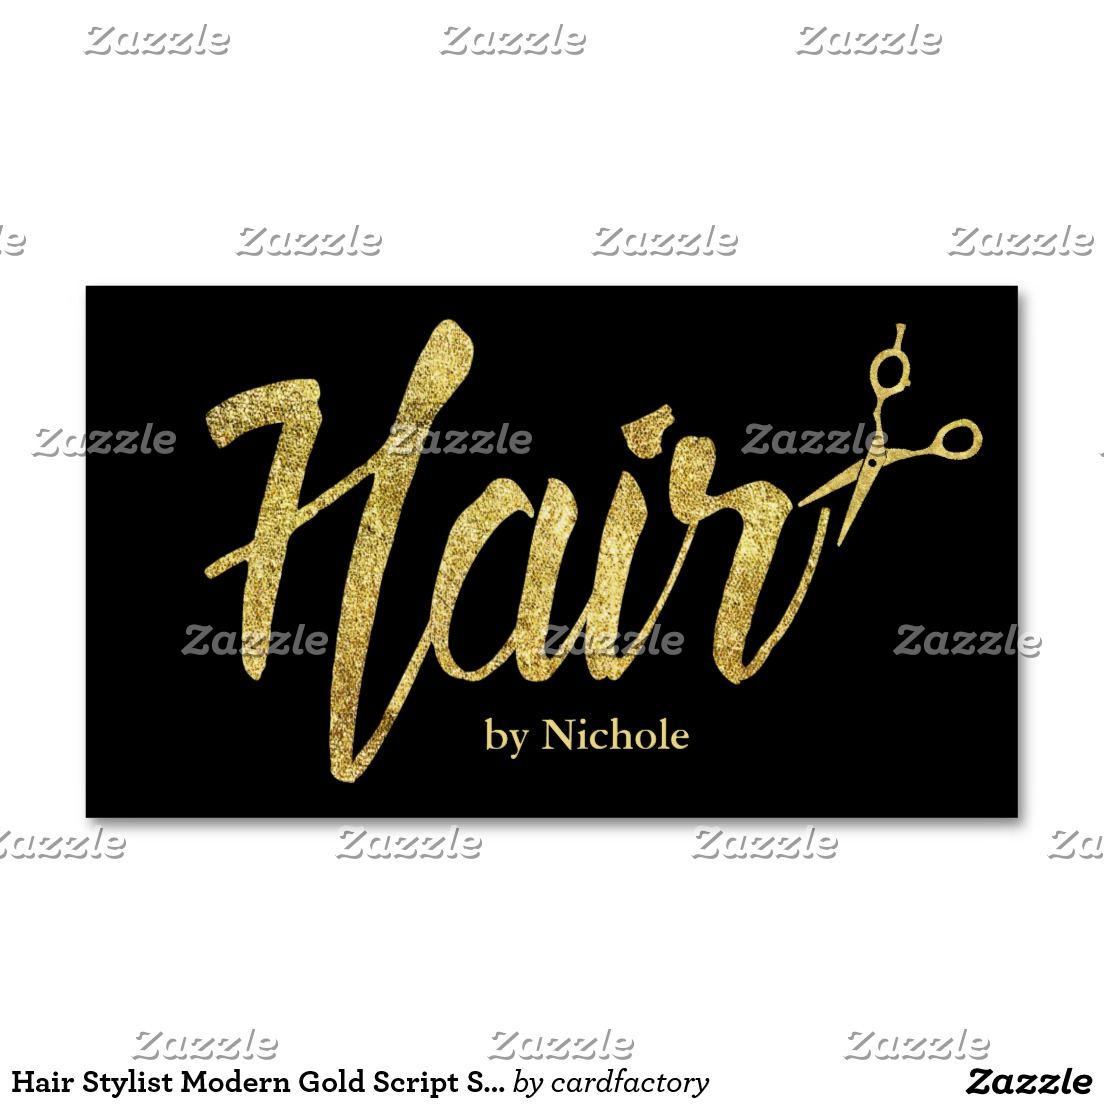 Hair Stylist Modern Gold Script Salon Appointment Business Card ...